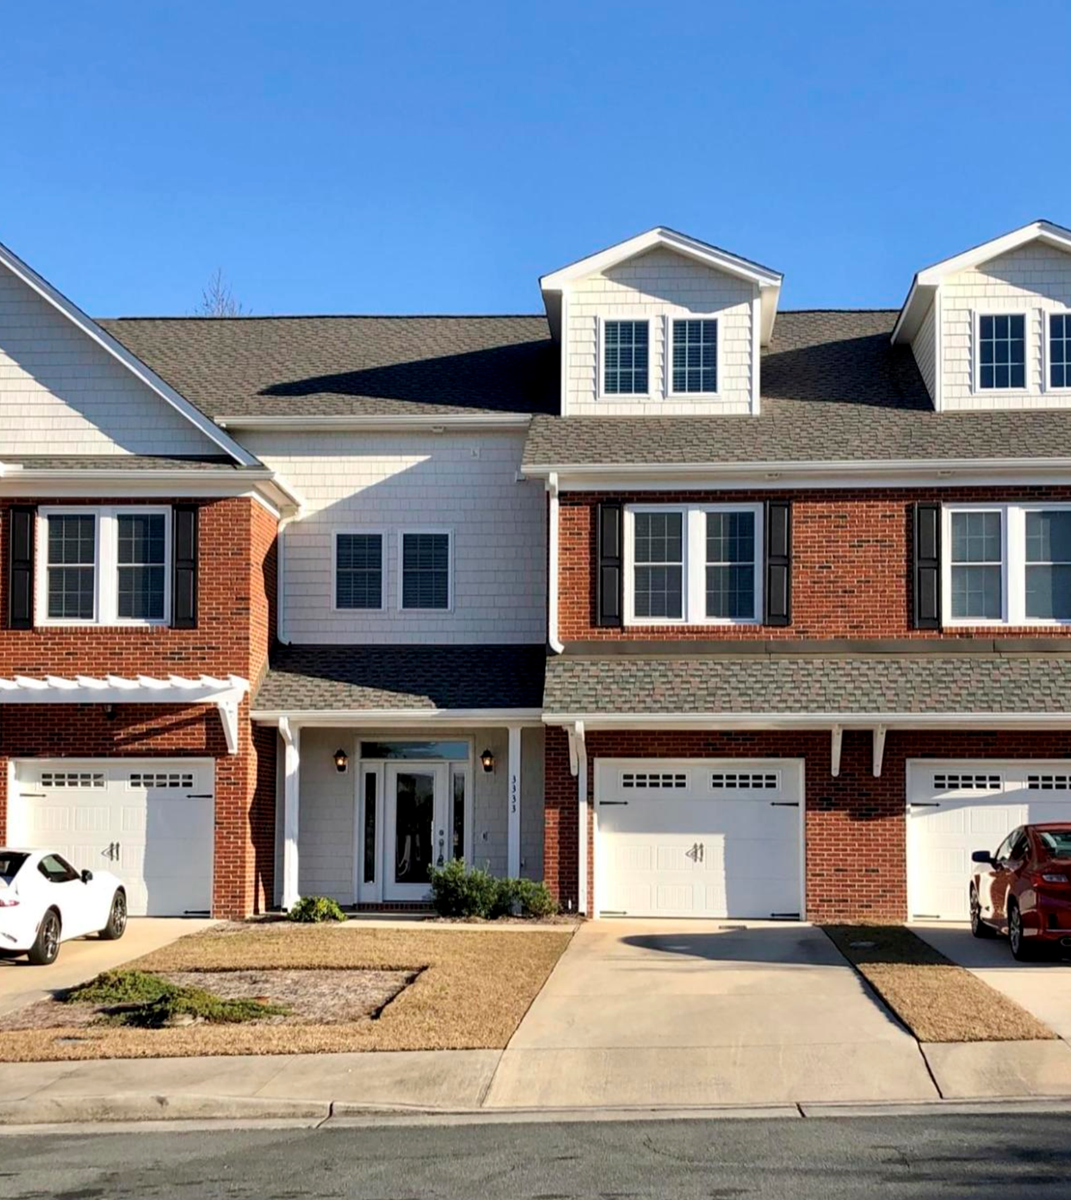 Townhome for sale in Wilmington, NC